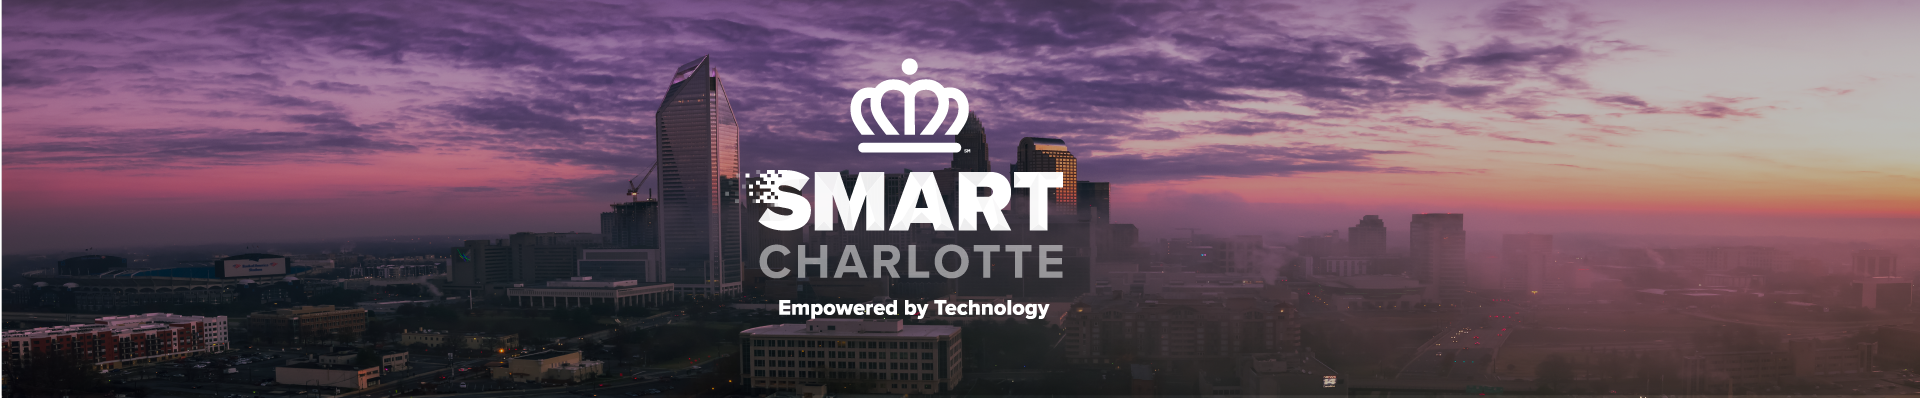 Smart Charlotte Empowered by Technology